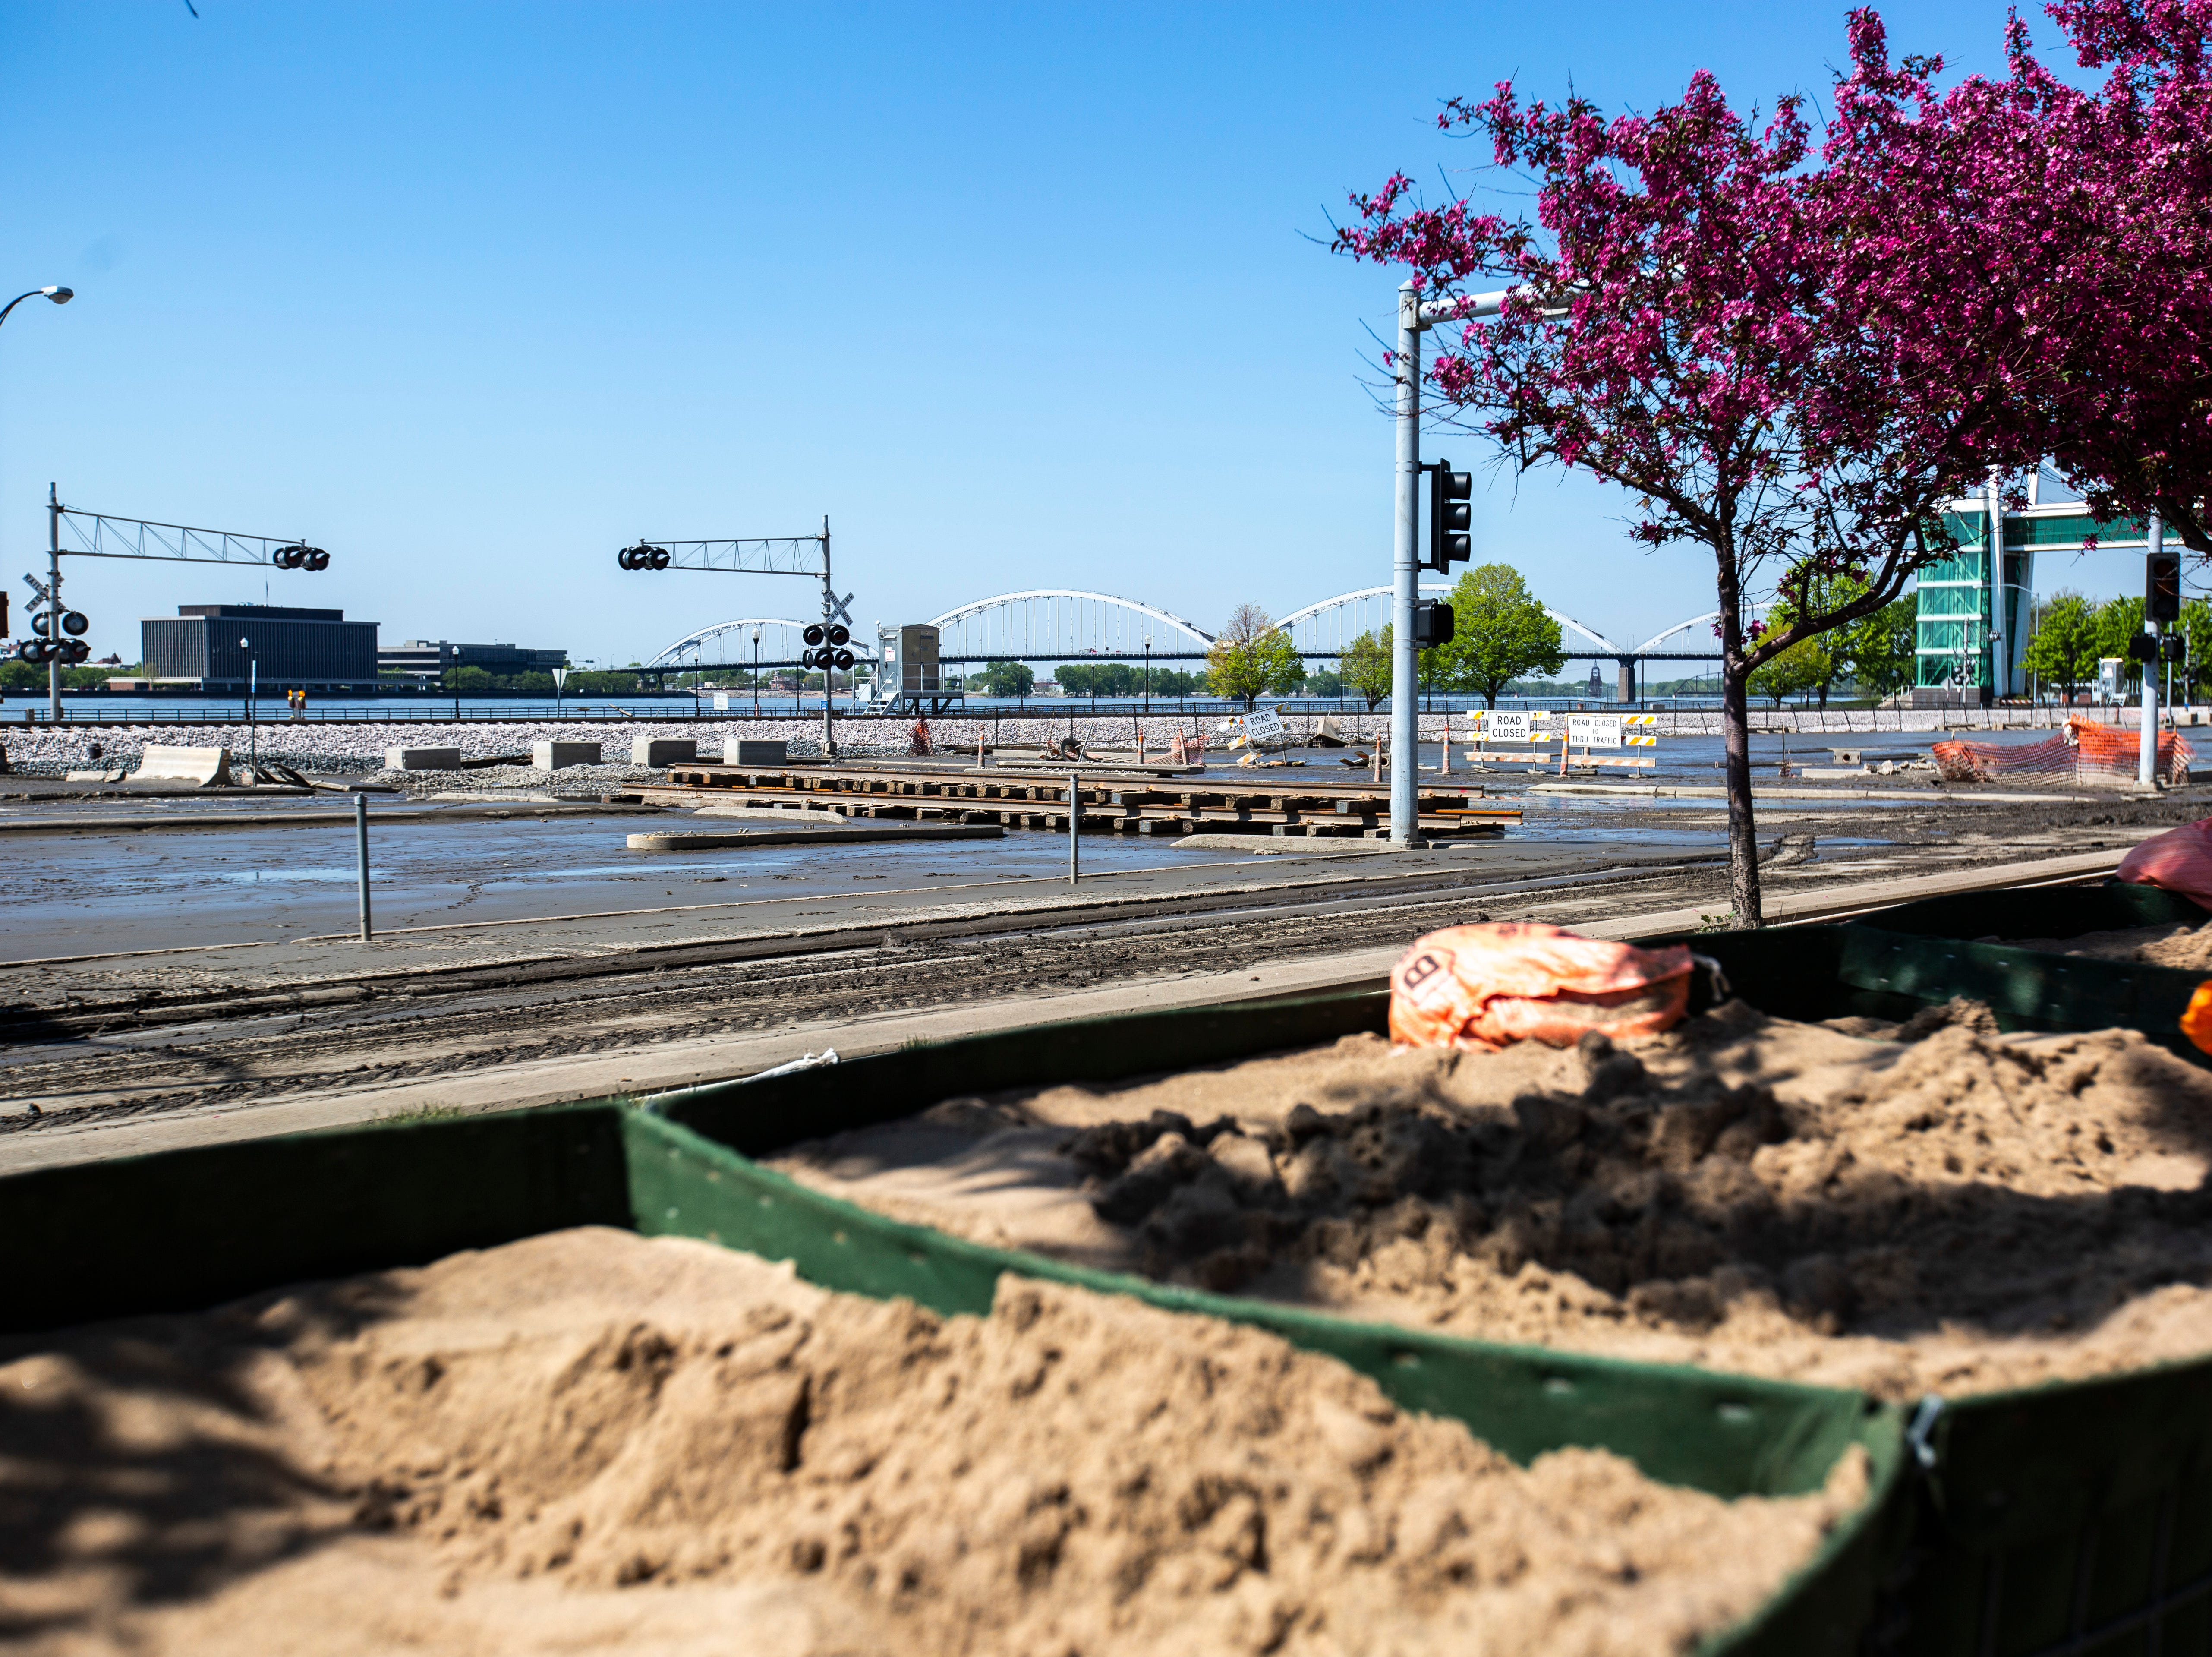 Mud and debris remains on the other side of HESCO barriers after floodwaters receded, Wednesday, May 15, 2019, in downtown Davenport, Iowa.